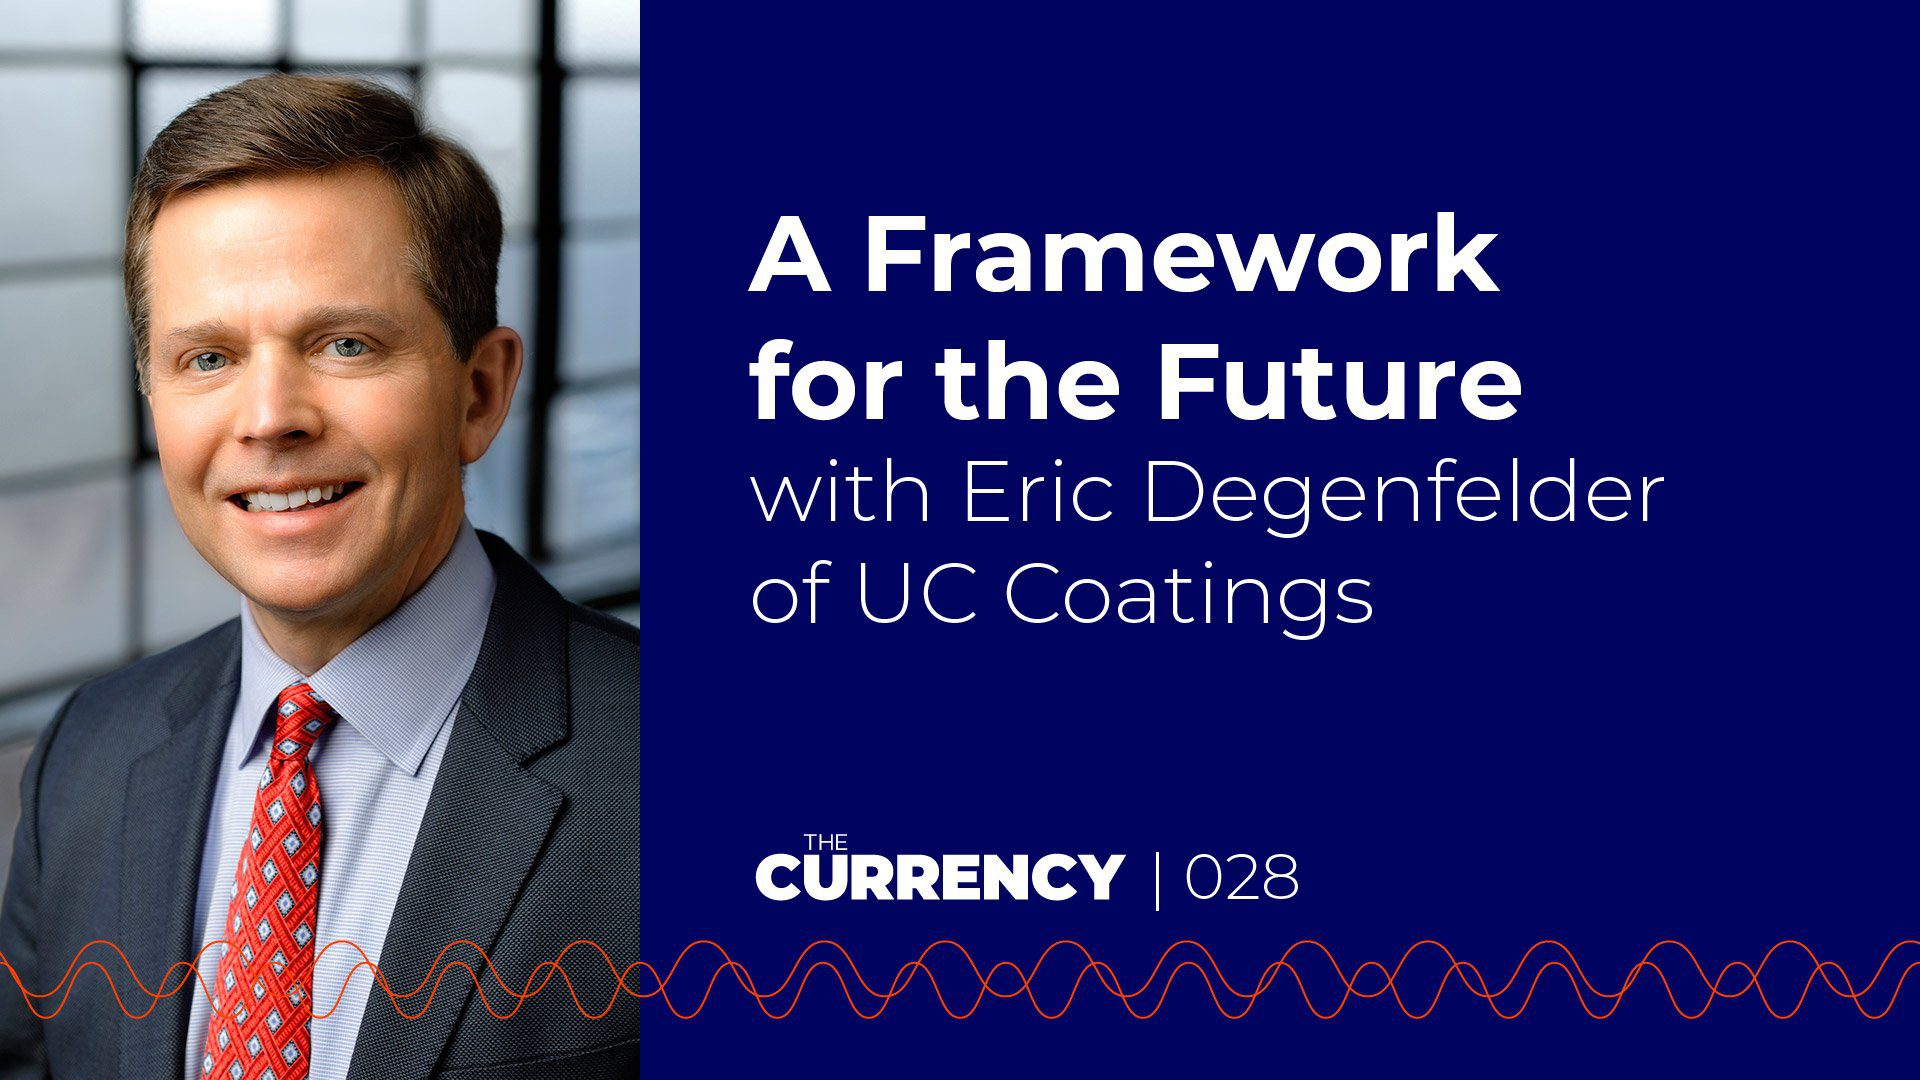 Eric Degenfelder, CEO of UC Coatings, on The Currency podcast